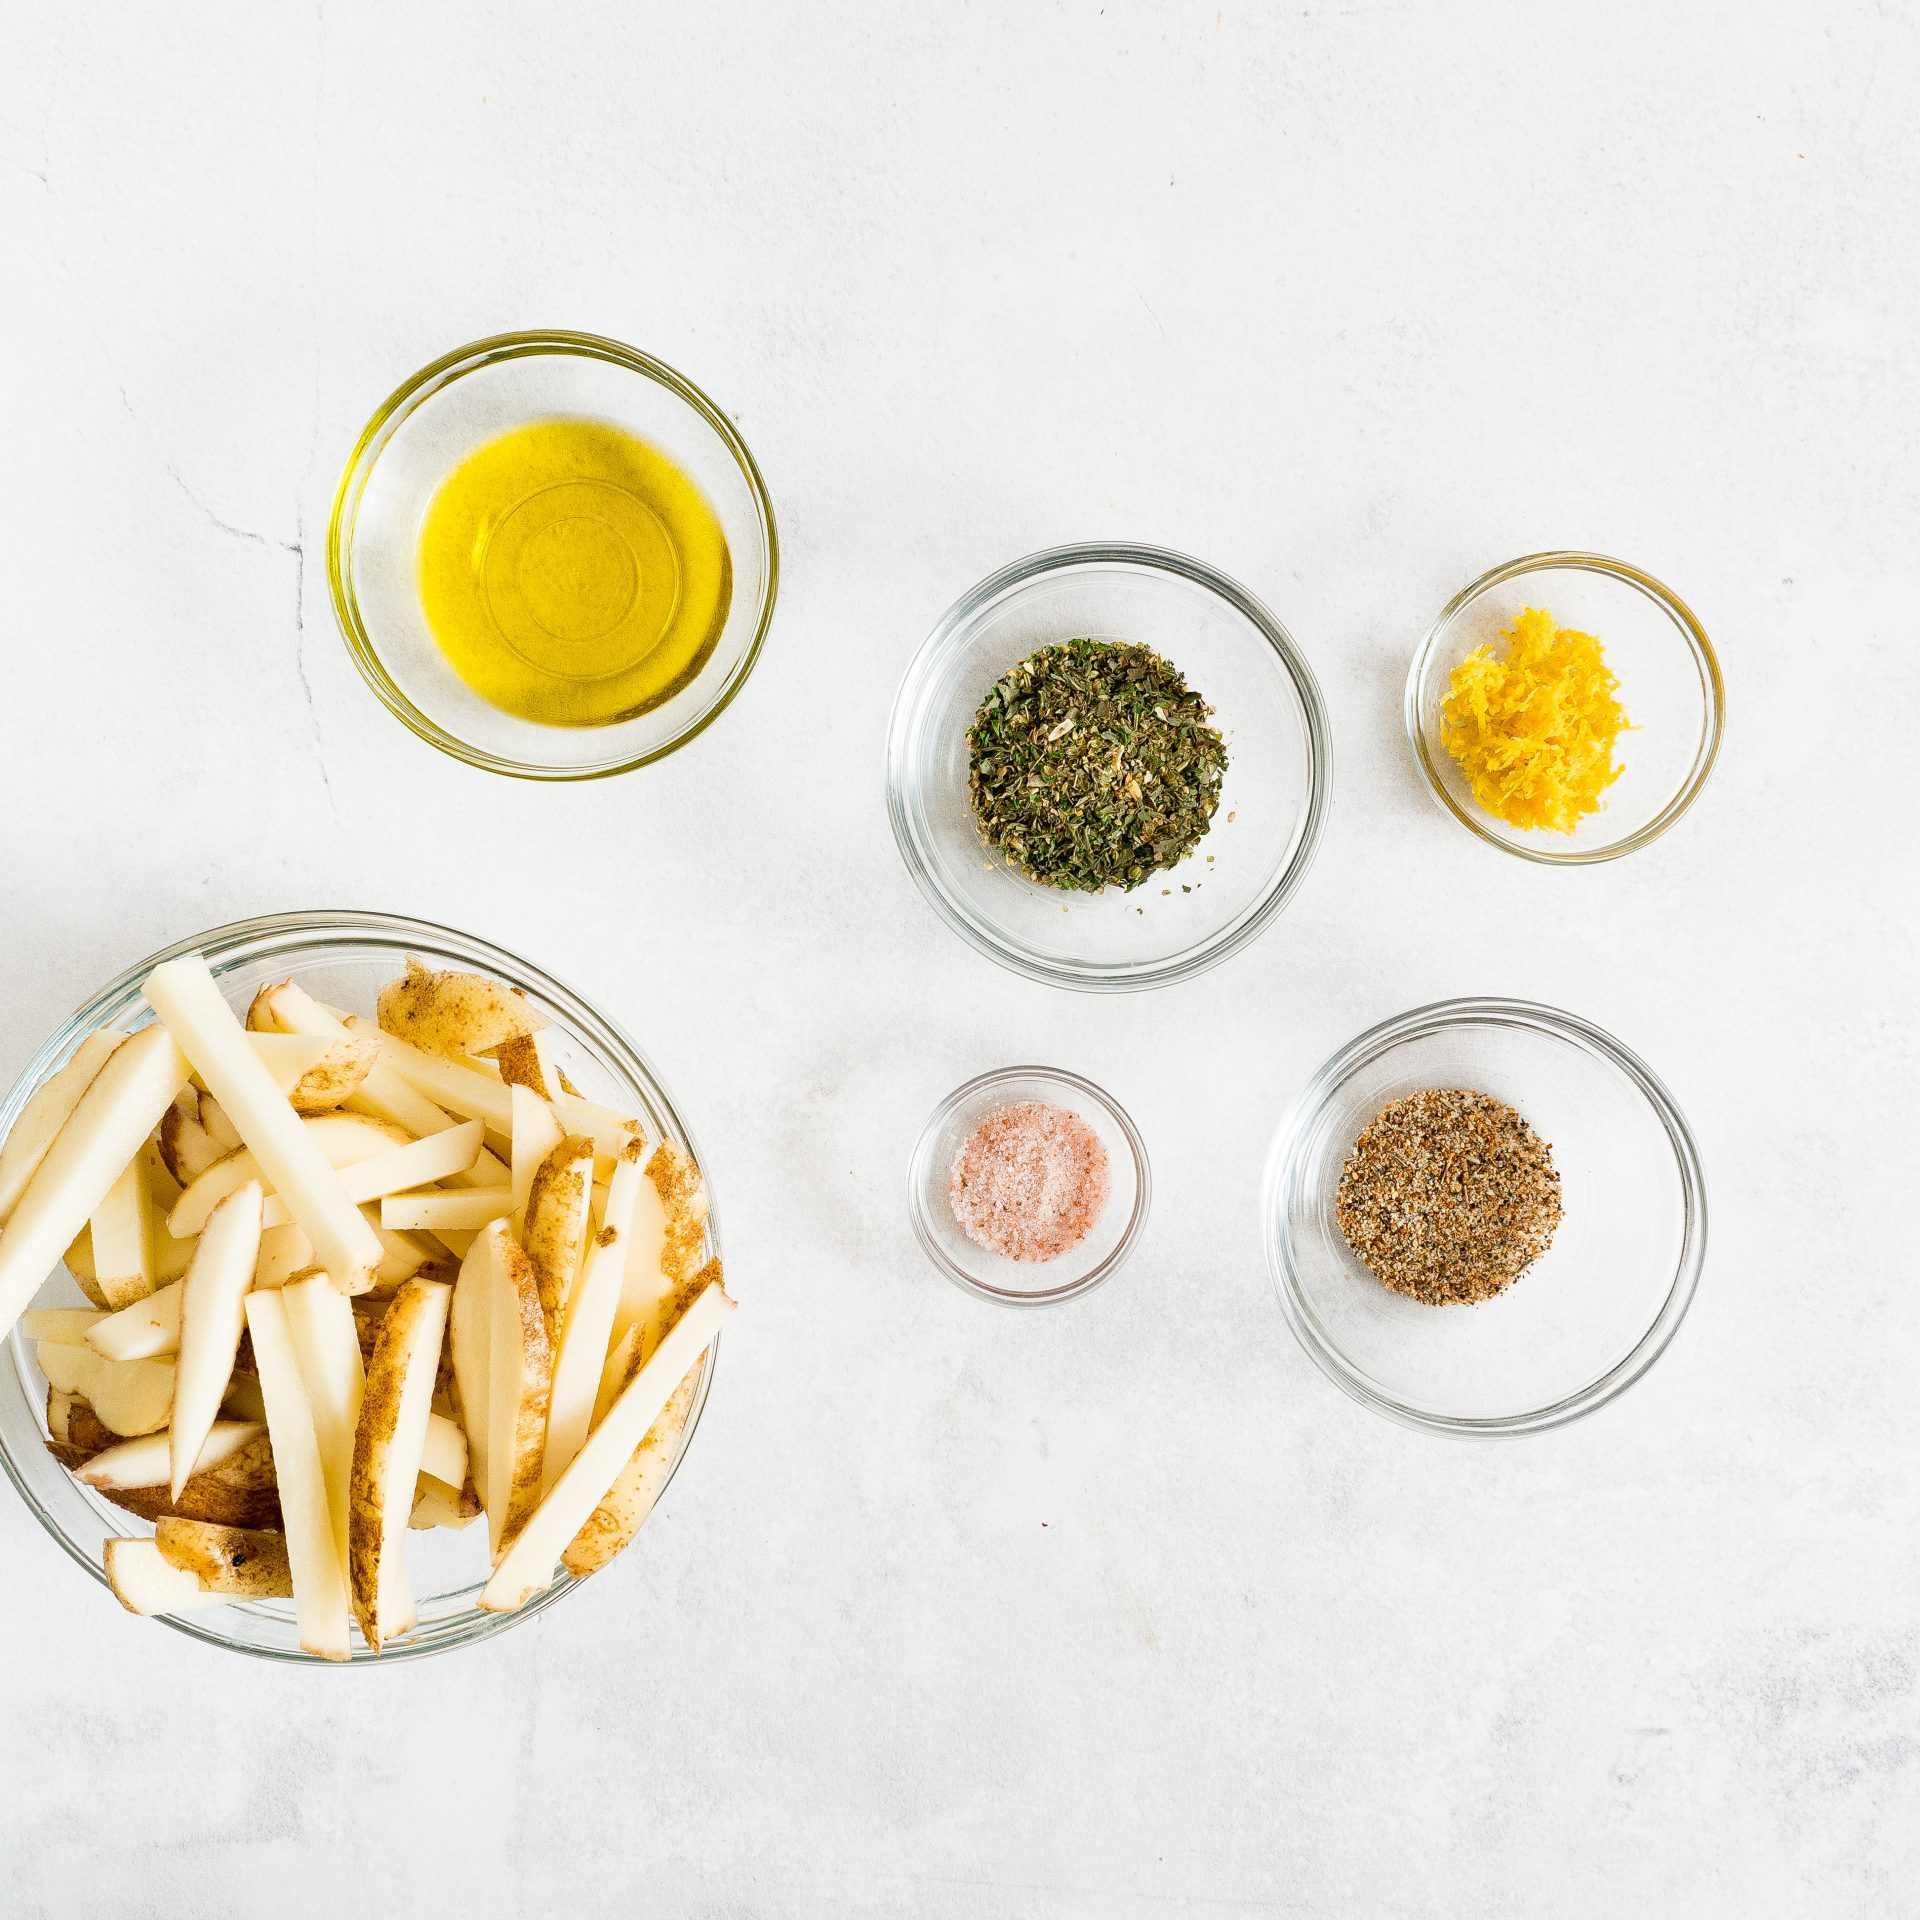 picture of air fryer french fry ingredients